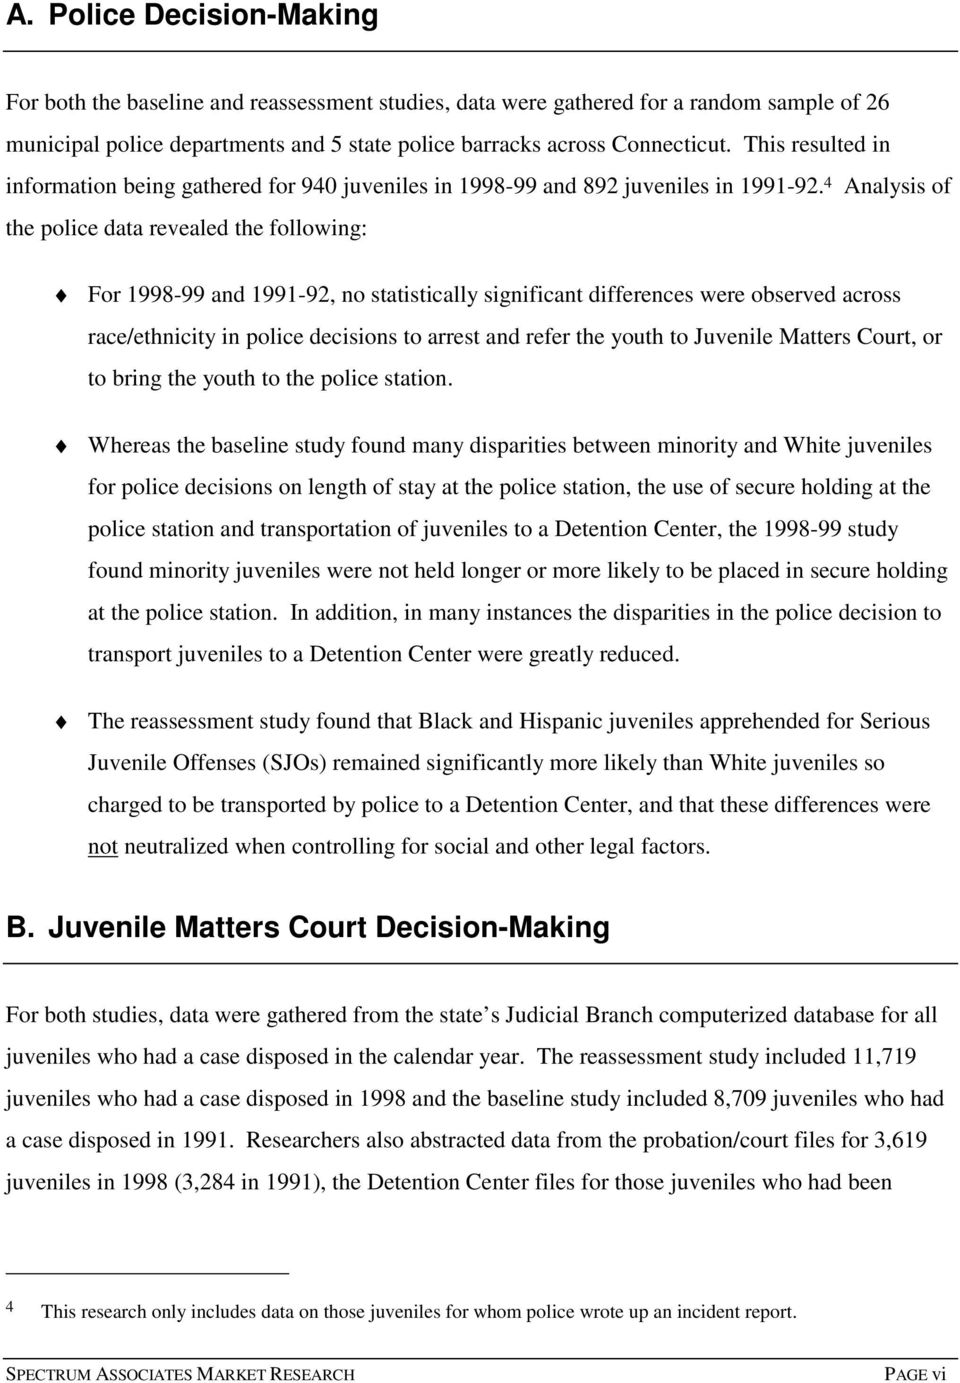 4 Analysis of the police data revealed the following: For 1998-99 and 1991-92, no statistically significant differences were observed across race/ethnicity in police decisions to arrest and refer the